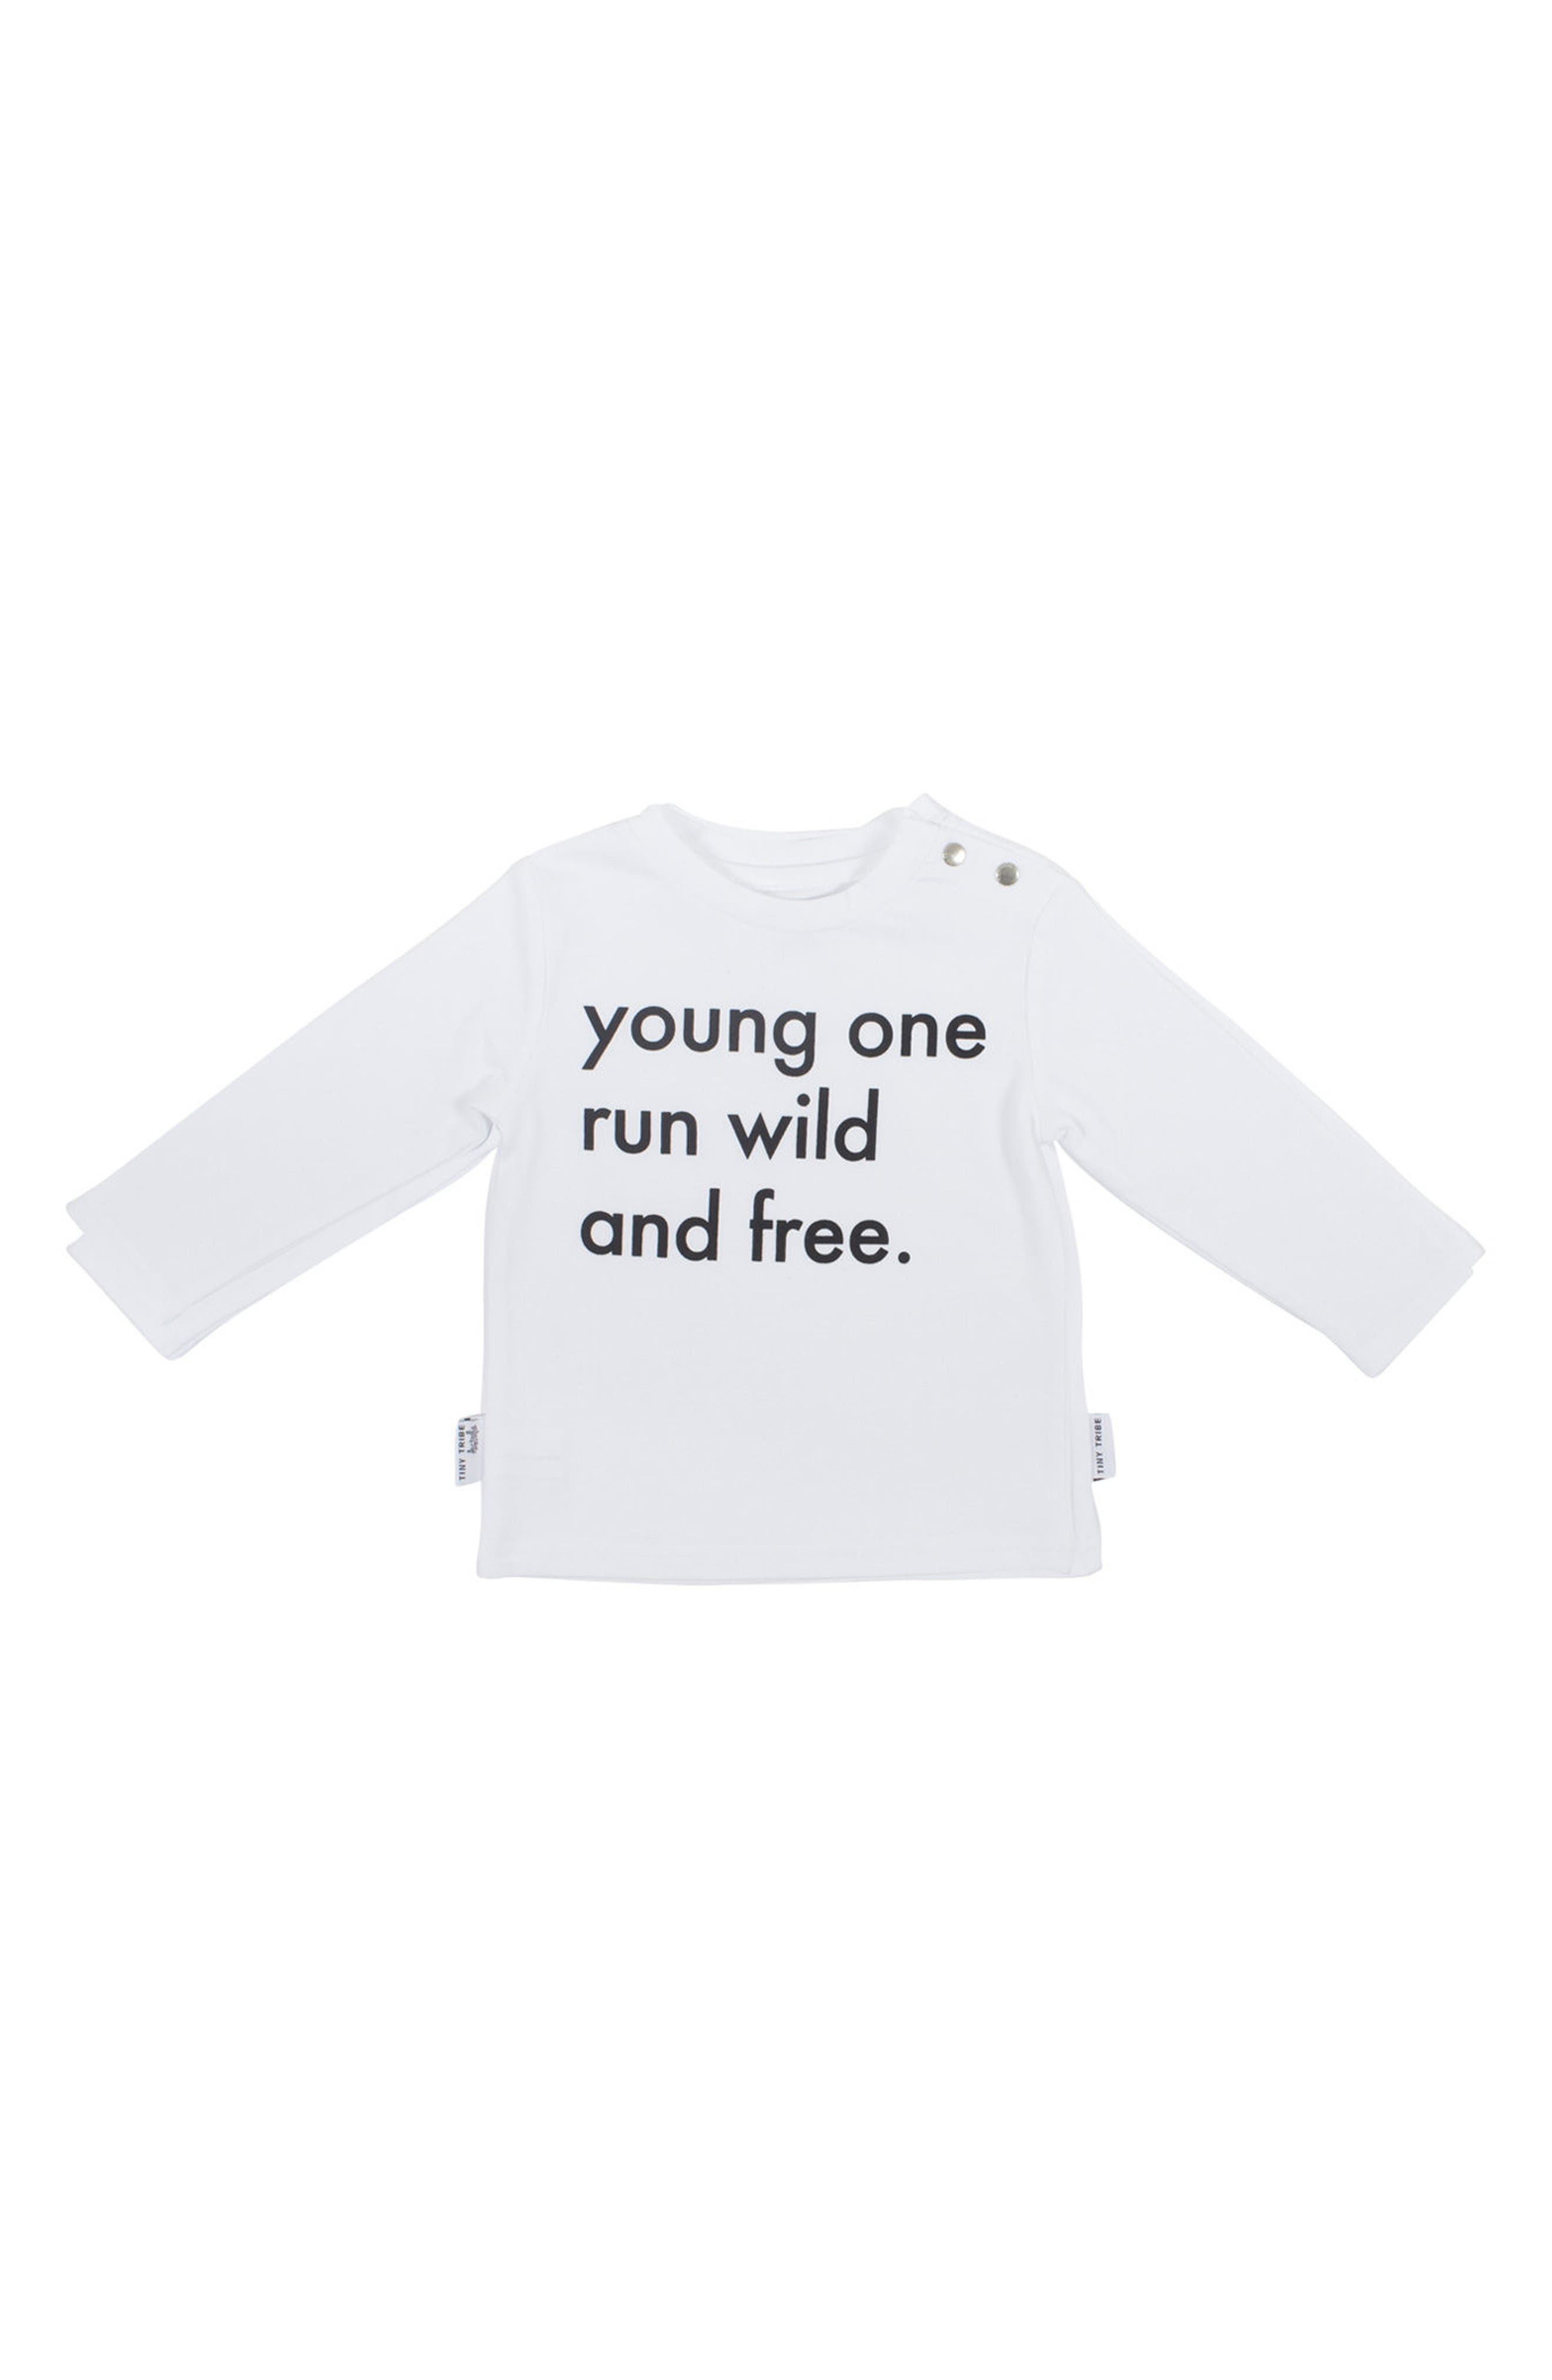 Run Wild & Free T-Shirt & Jogger Pants Set,                             Alternate thumbnail 2, color,                             White/ Black